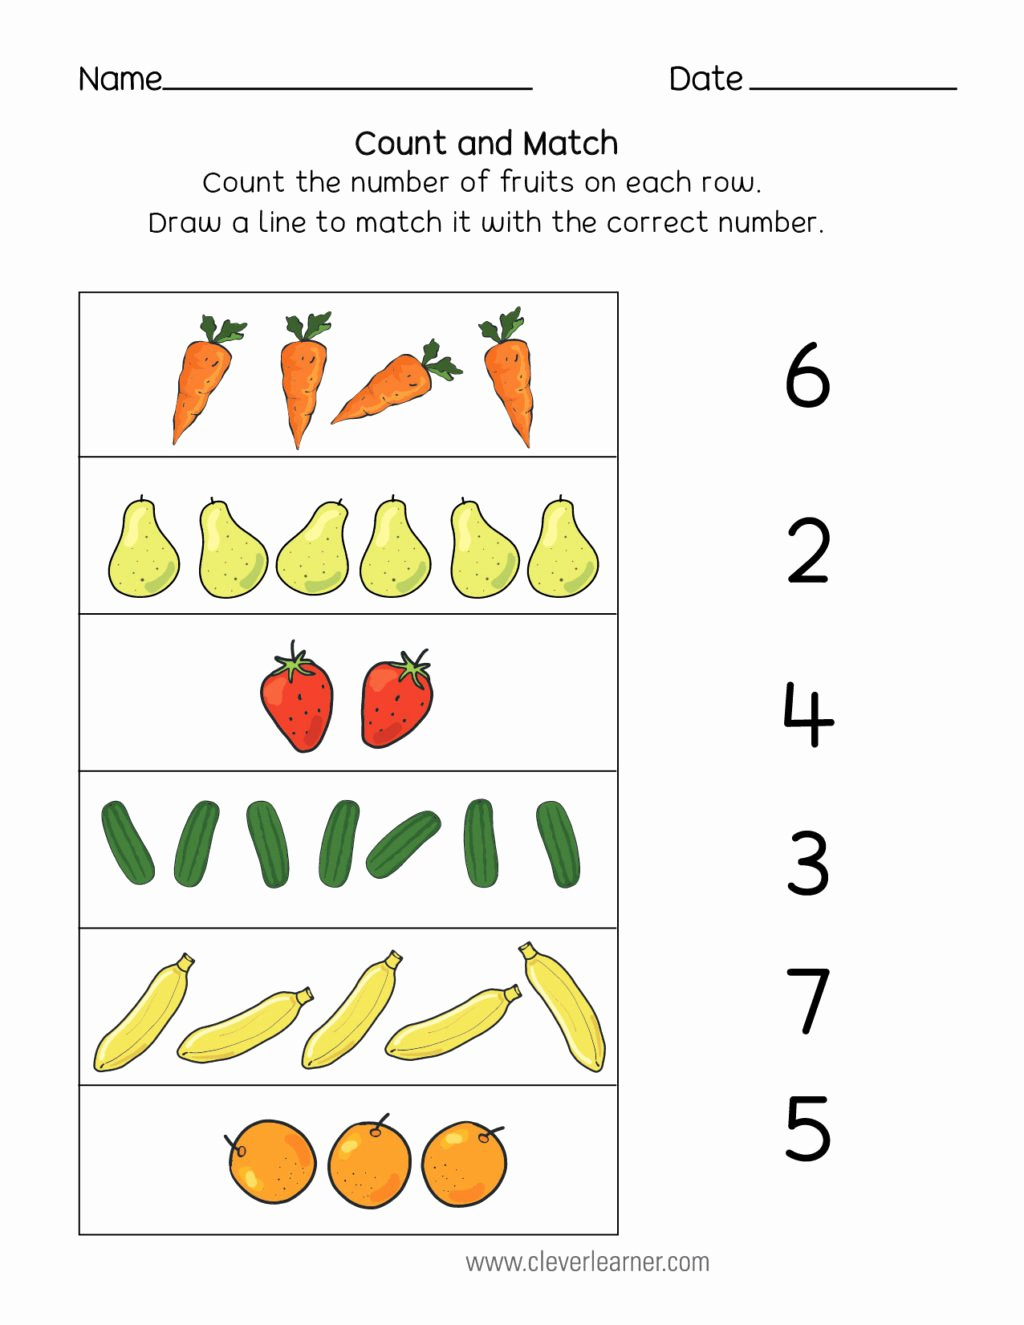 Matching Activity Worksheets for Preschoolers Ideas Worksheet Number Matching Counting and Writing Worksheets